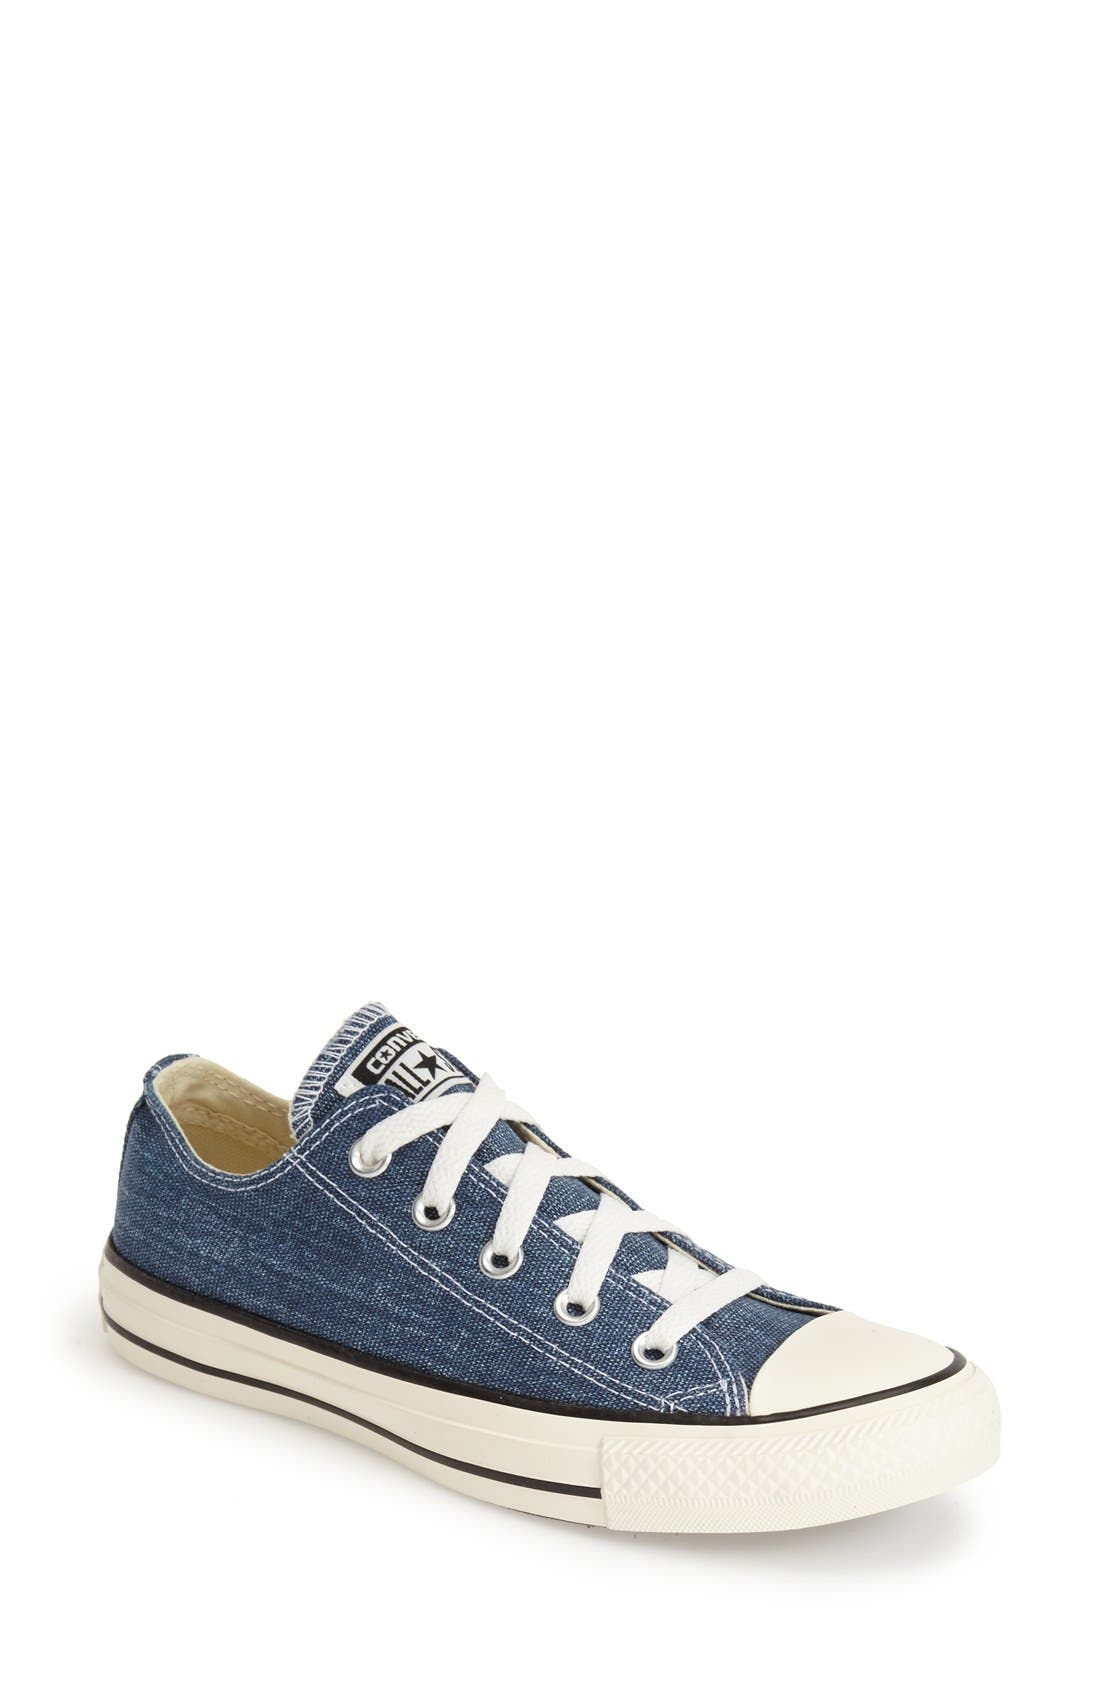 Main Image - Converse Chuck Taylor® All Star® Washed Canvas 'Ox' Sneaker (Women)